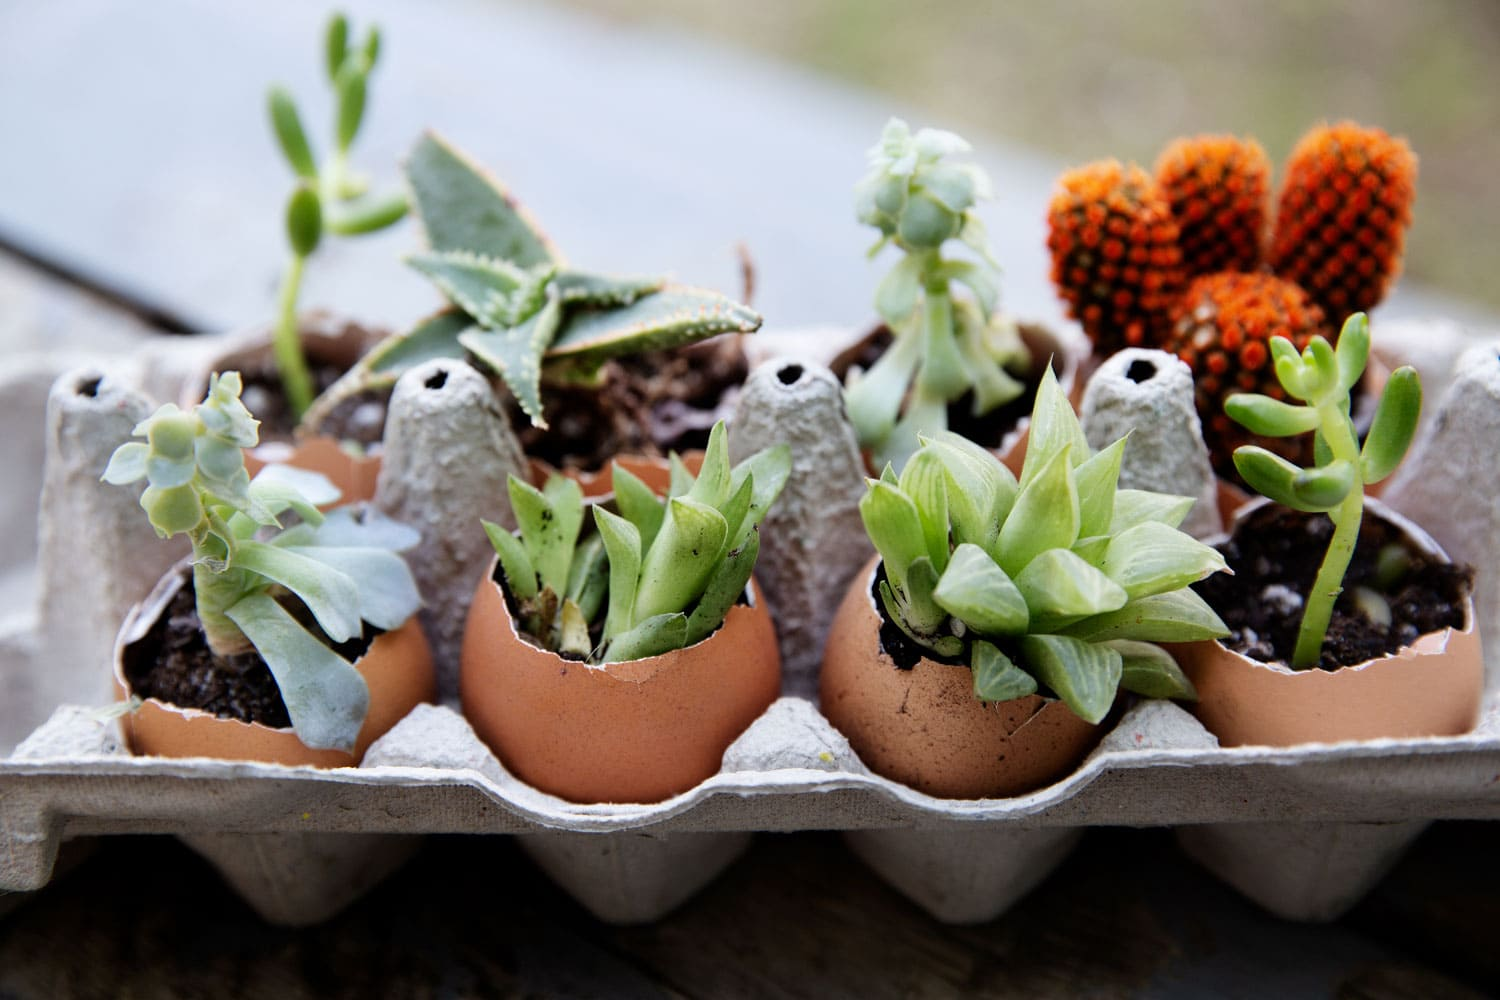 Succulent plants planted in eggshells and in an egg carton.